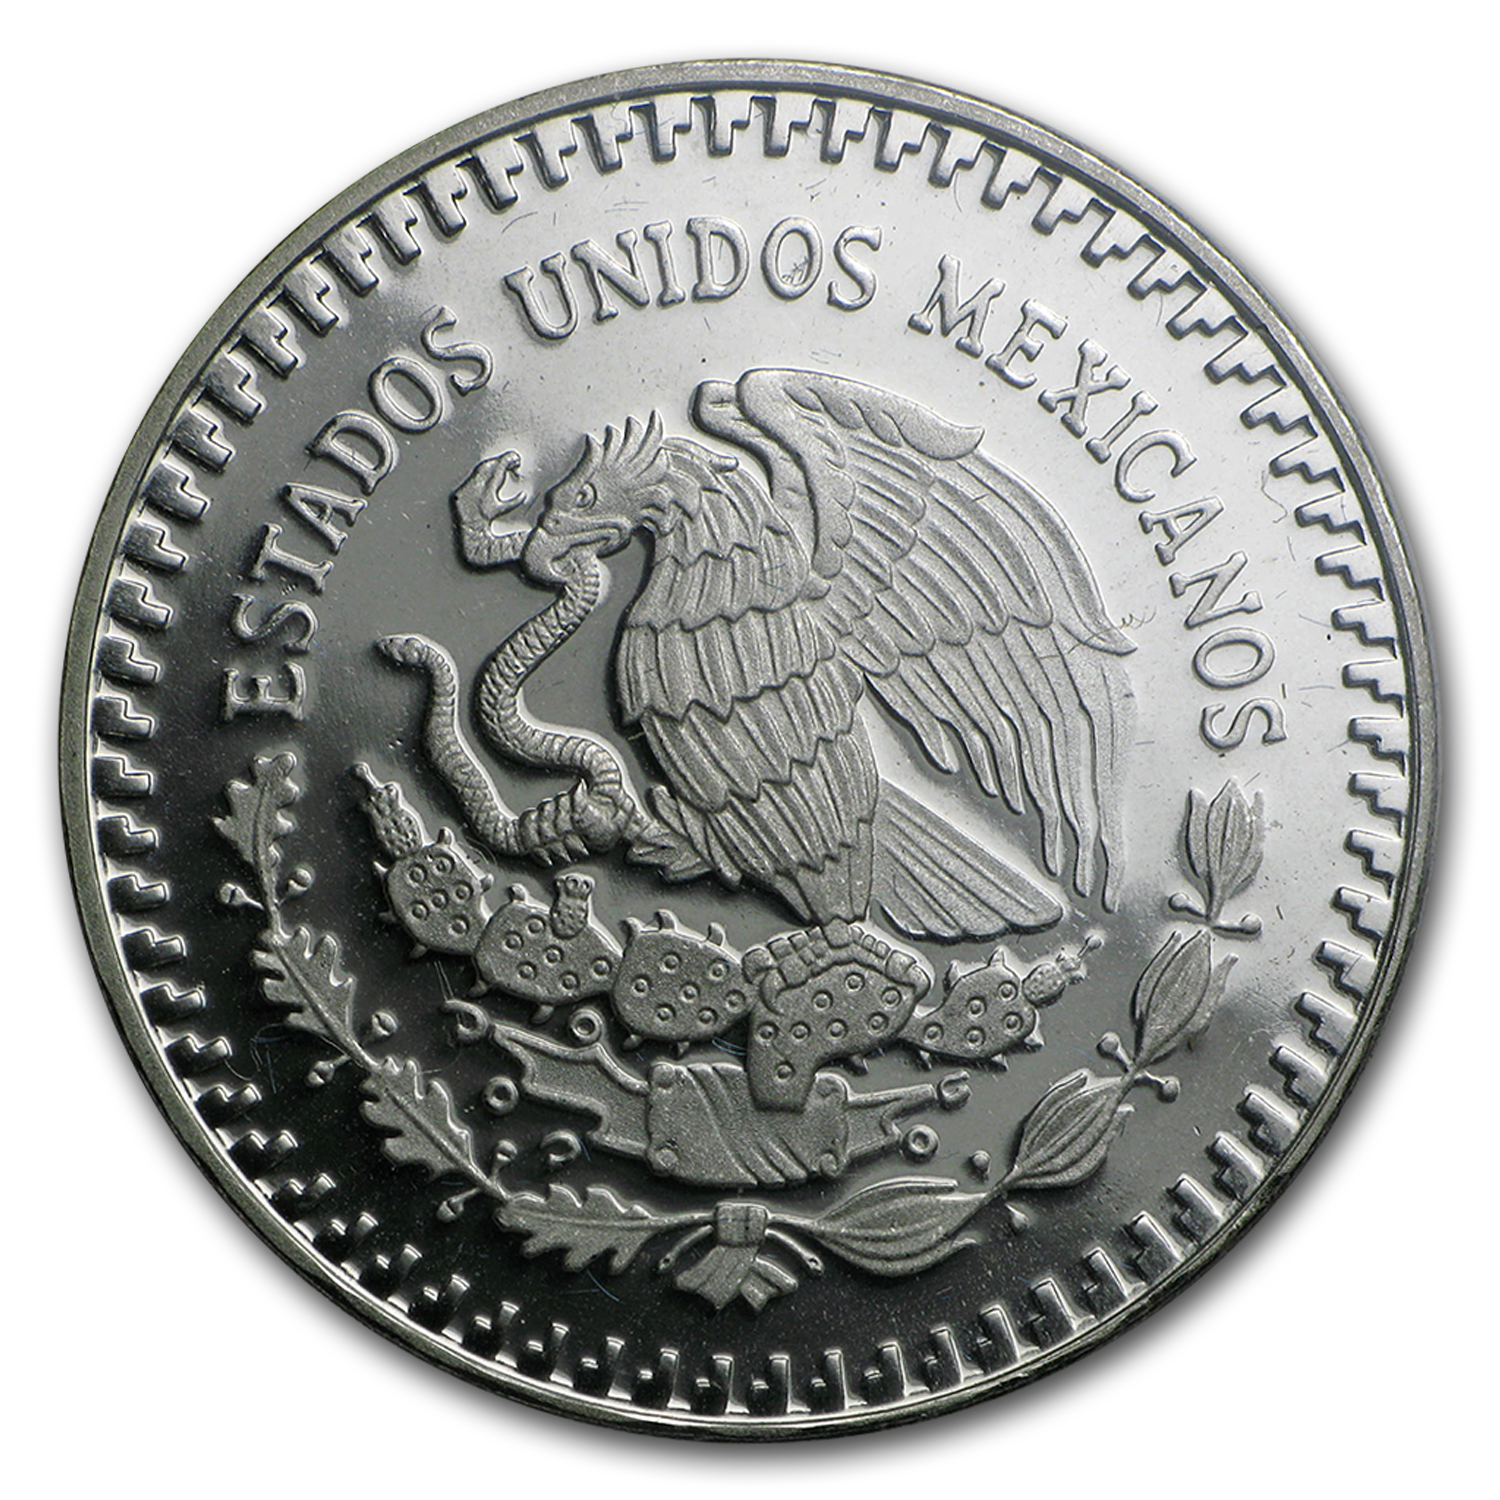 1986 1 oz Silver Mexican Libertad - Proof (w/Box & CoA)